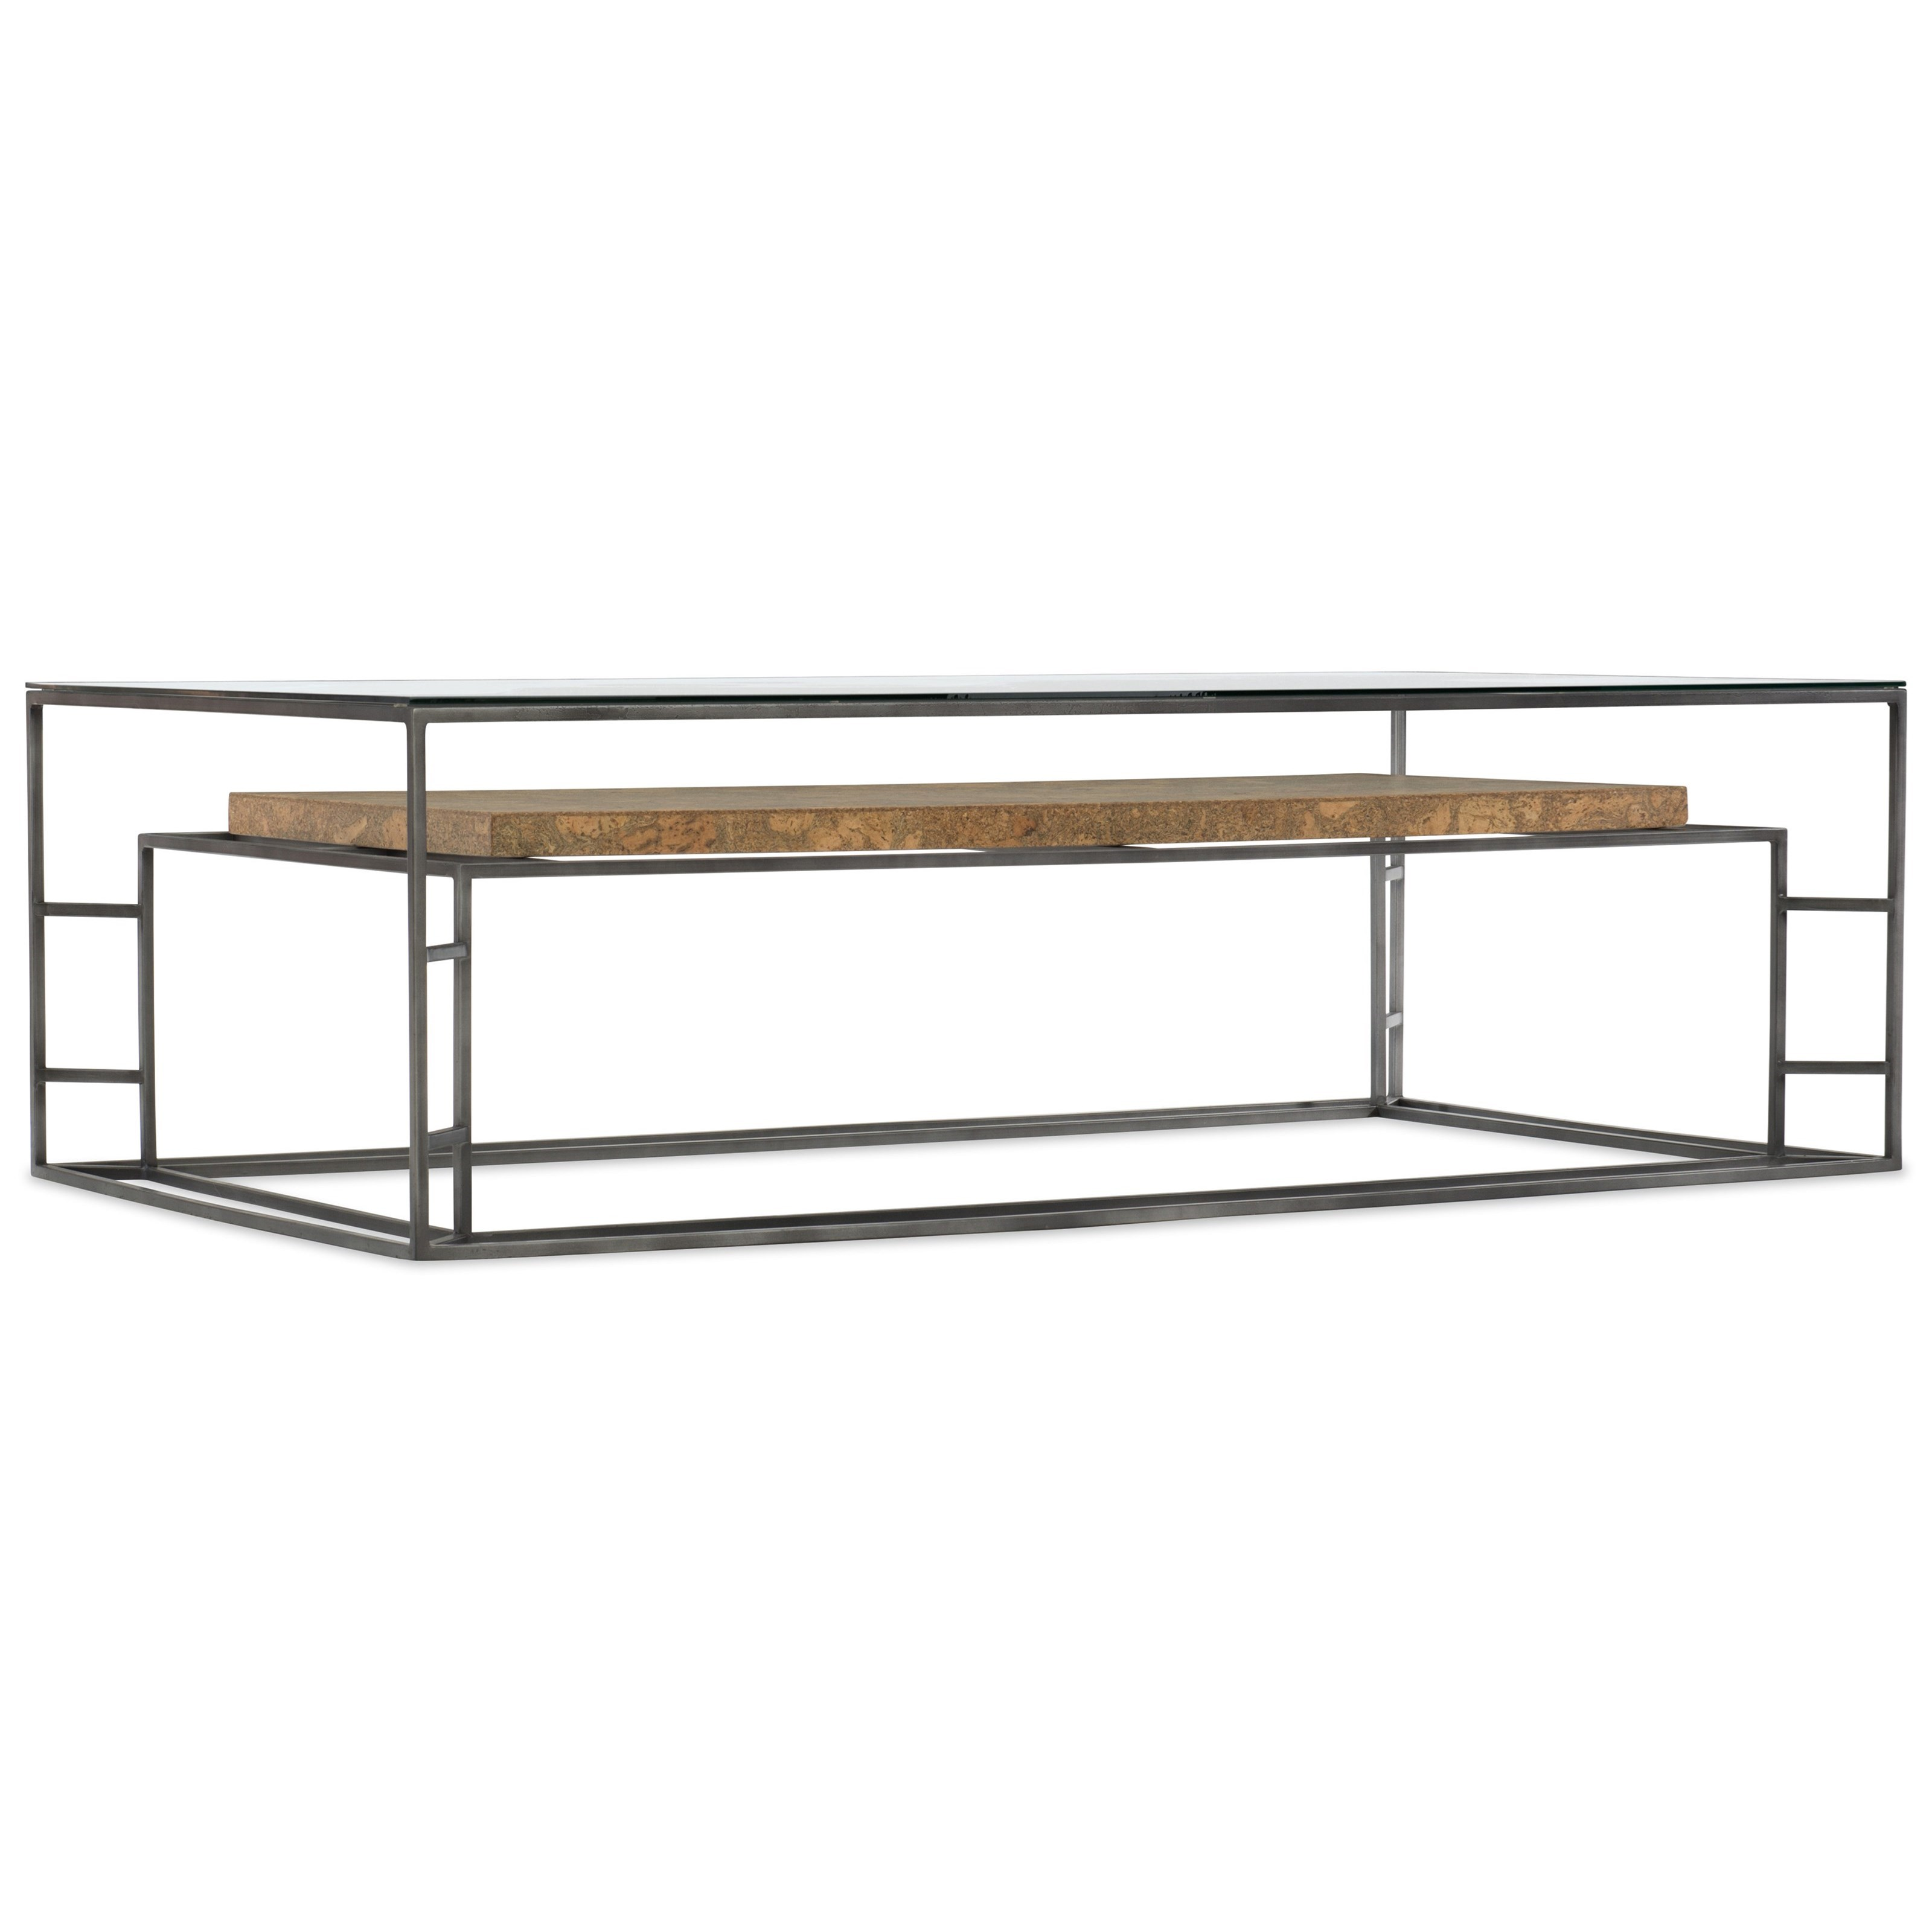 5645-80 Rectangle Cocktail Table by Hooker Furniture at Esprit Decor Home Furnishings